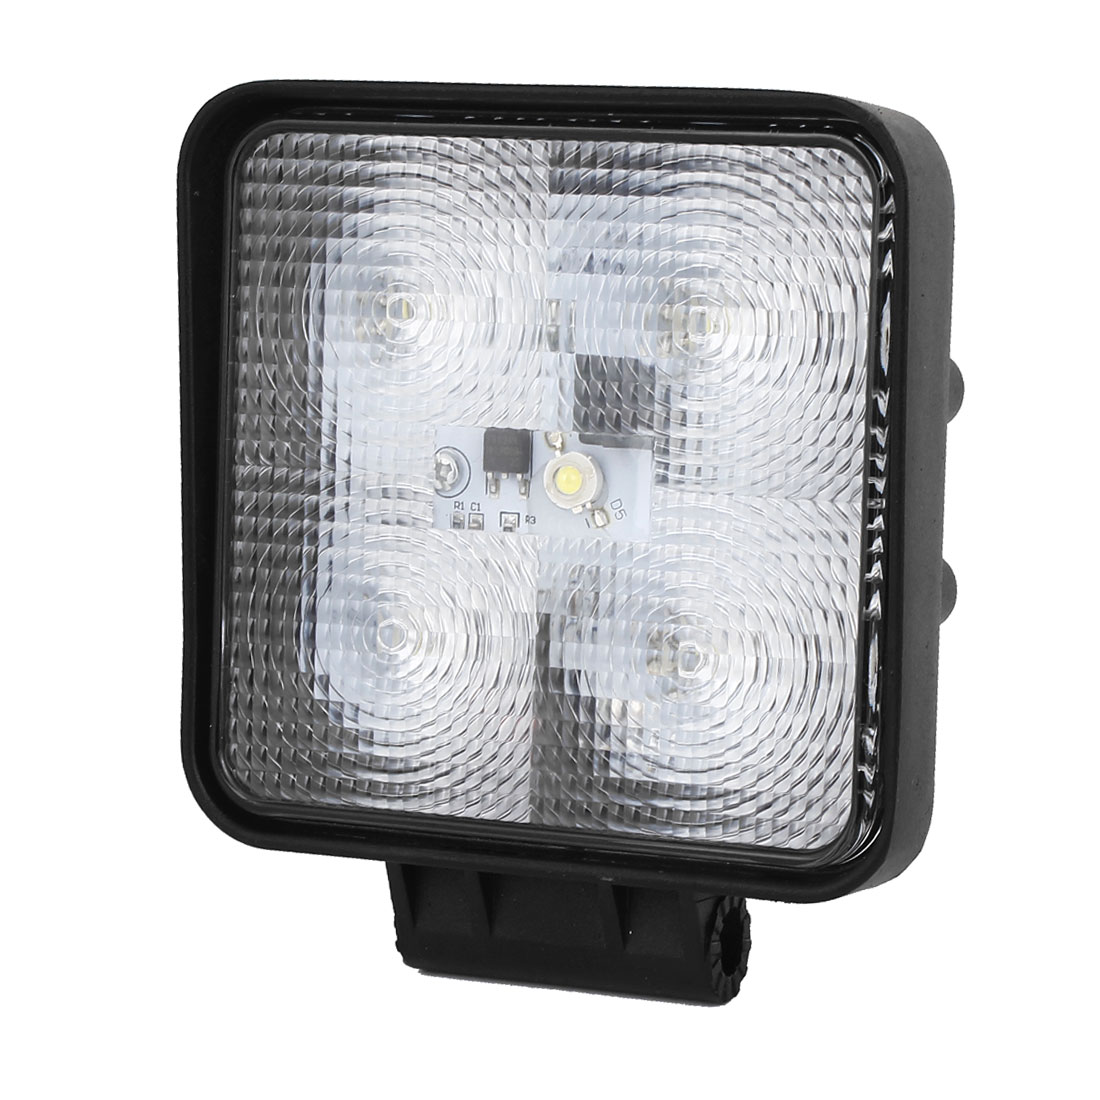 Black Metal Square Shell White 5-LEDs Bulb Flood Lamp Spotlight Working Light DC 12V 15W for Truck